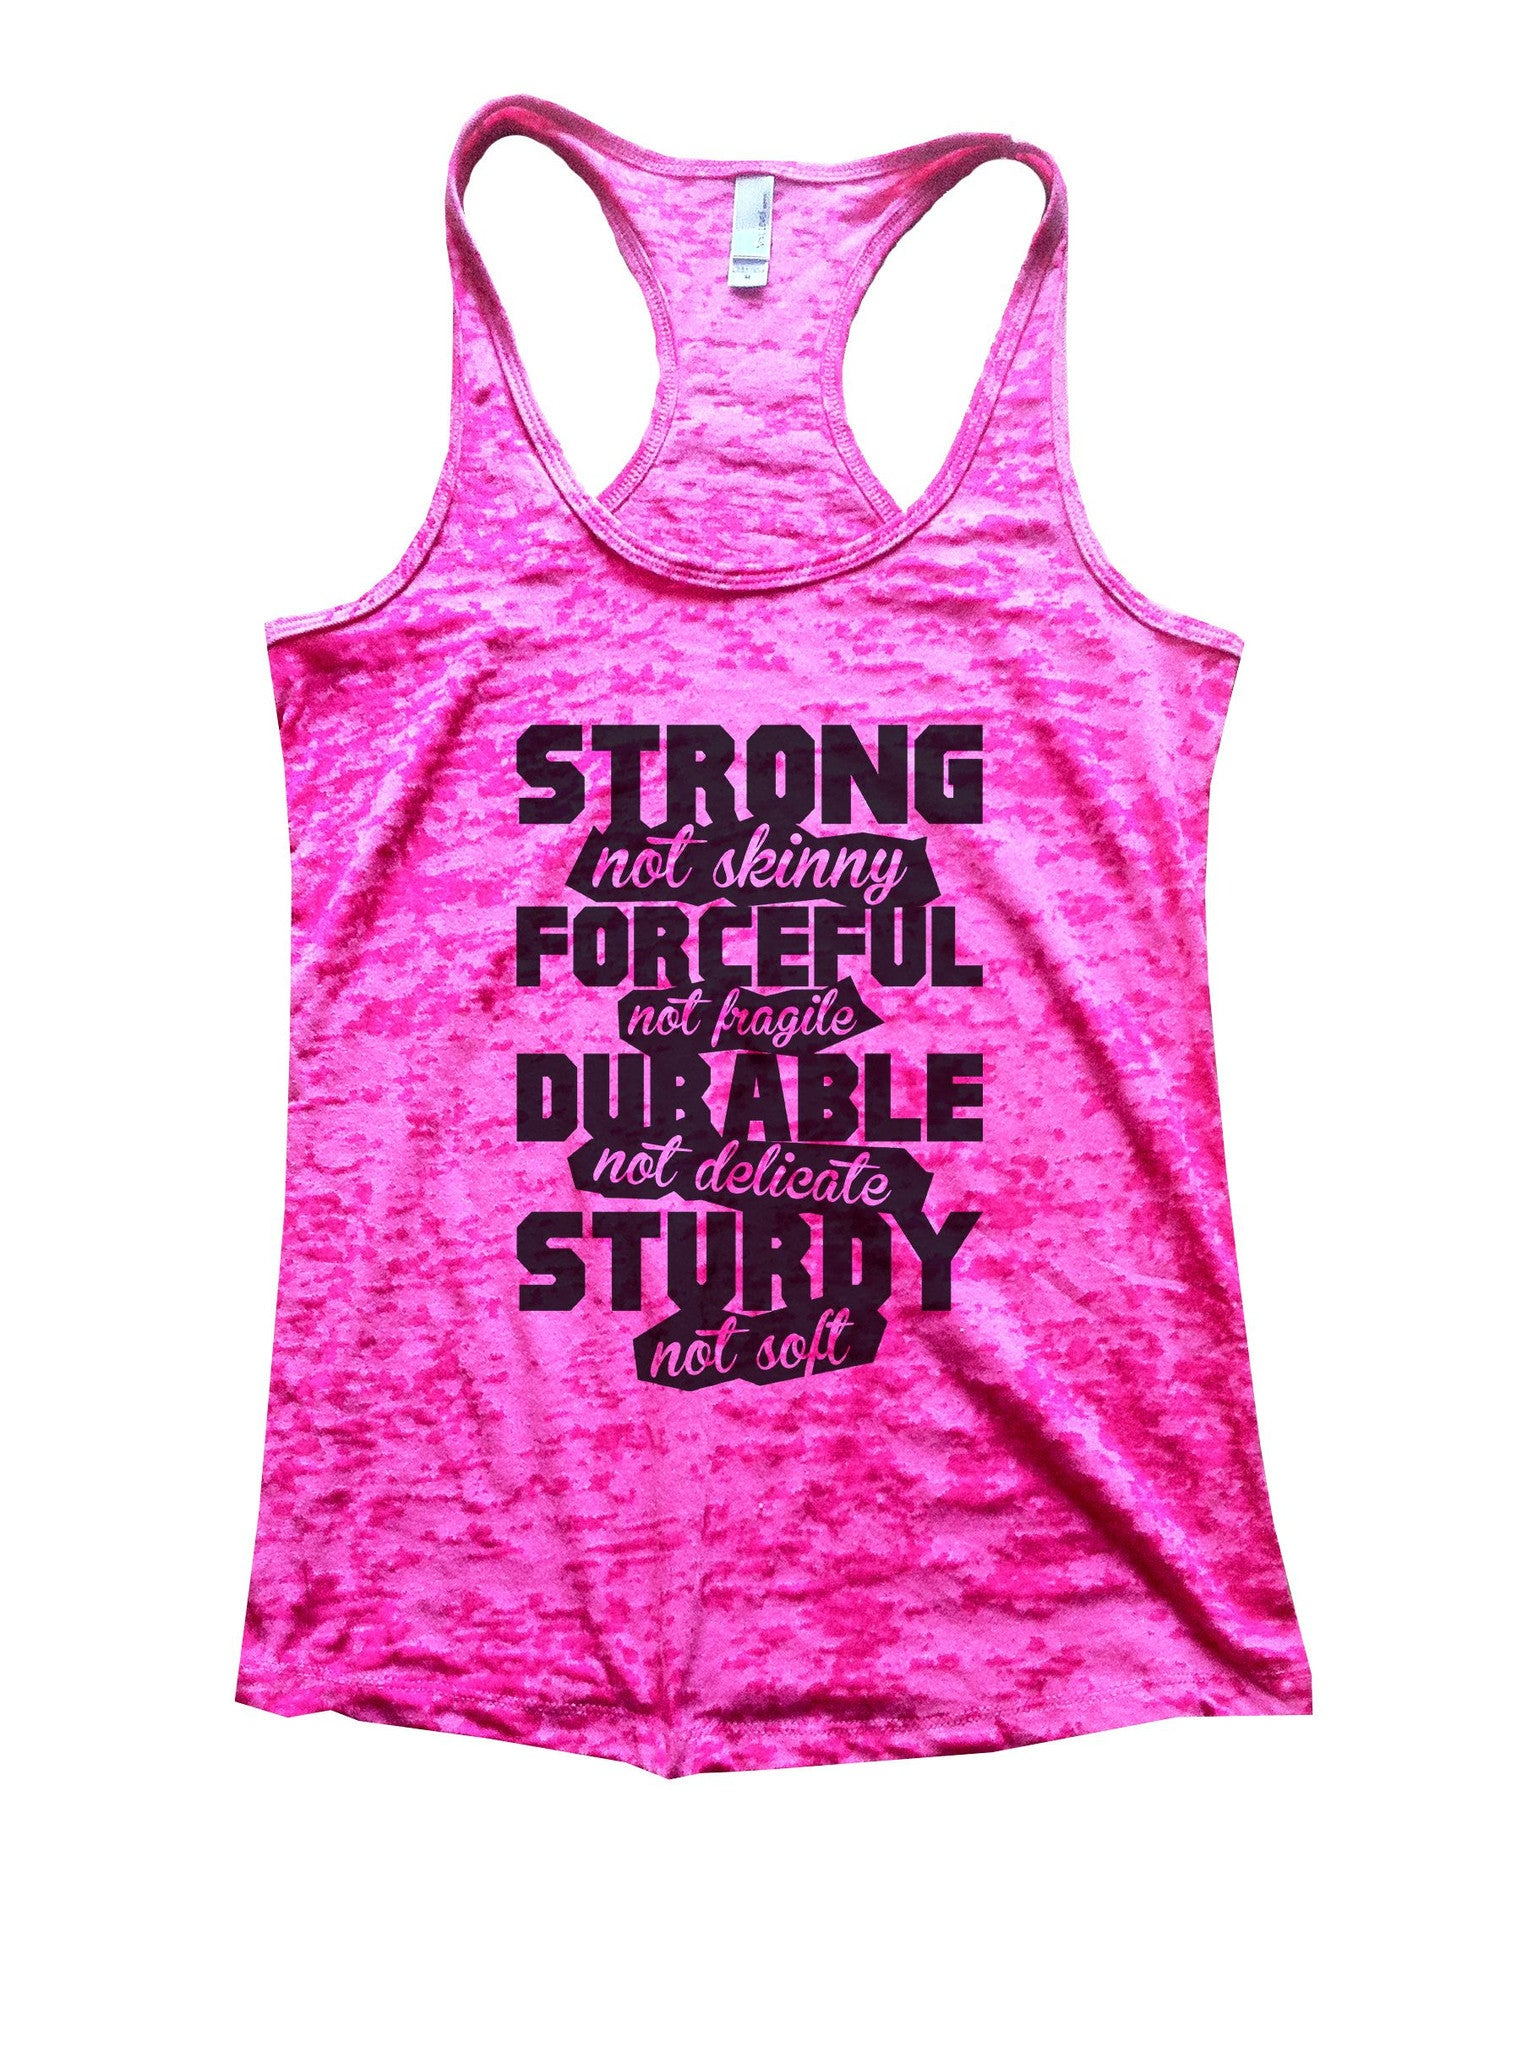 Strong Not Skinny Forceful Not Fragile Durable Not Delicate Sturdy Not Soft Burnout Tank Top By BurnoutTankTops.com - 845 - Funny Shirts Tank Tops Burnouts and Triblends  - 5